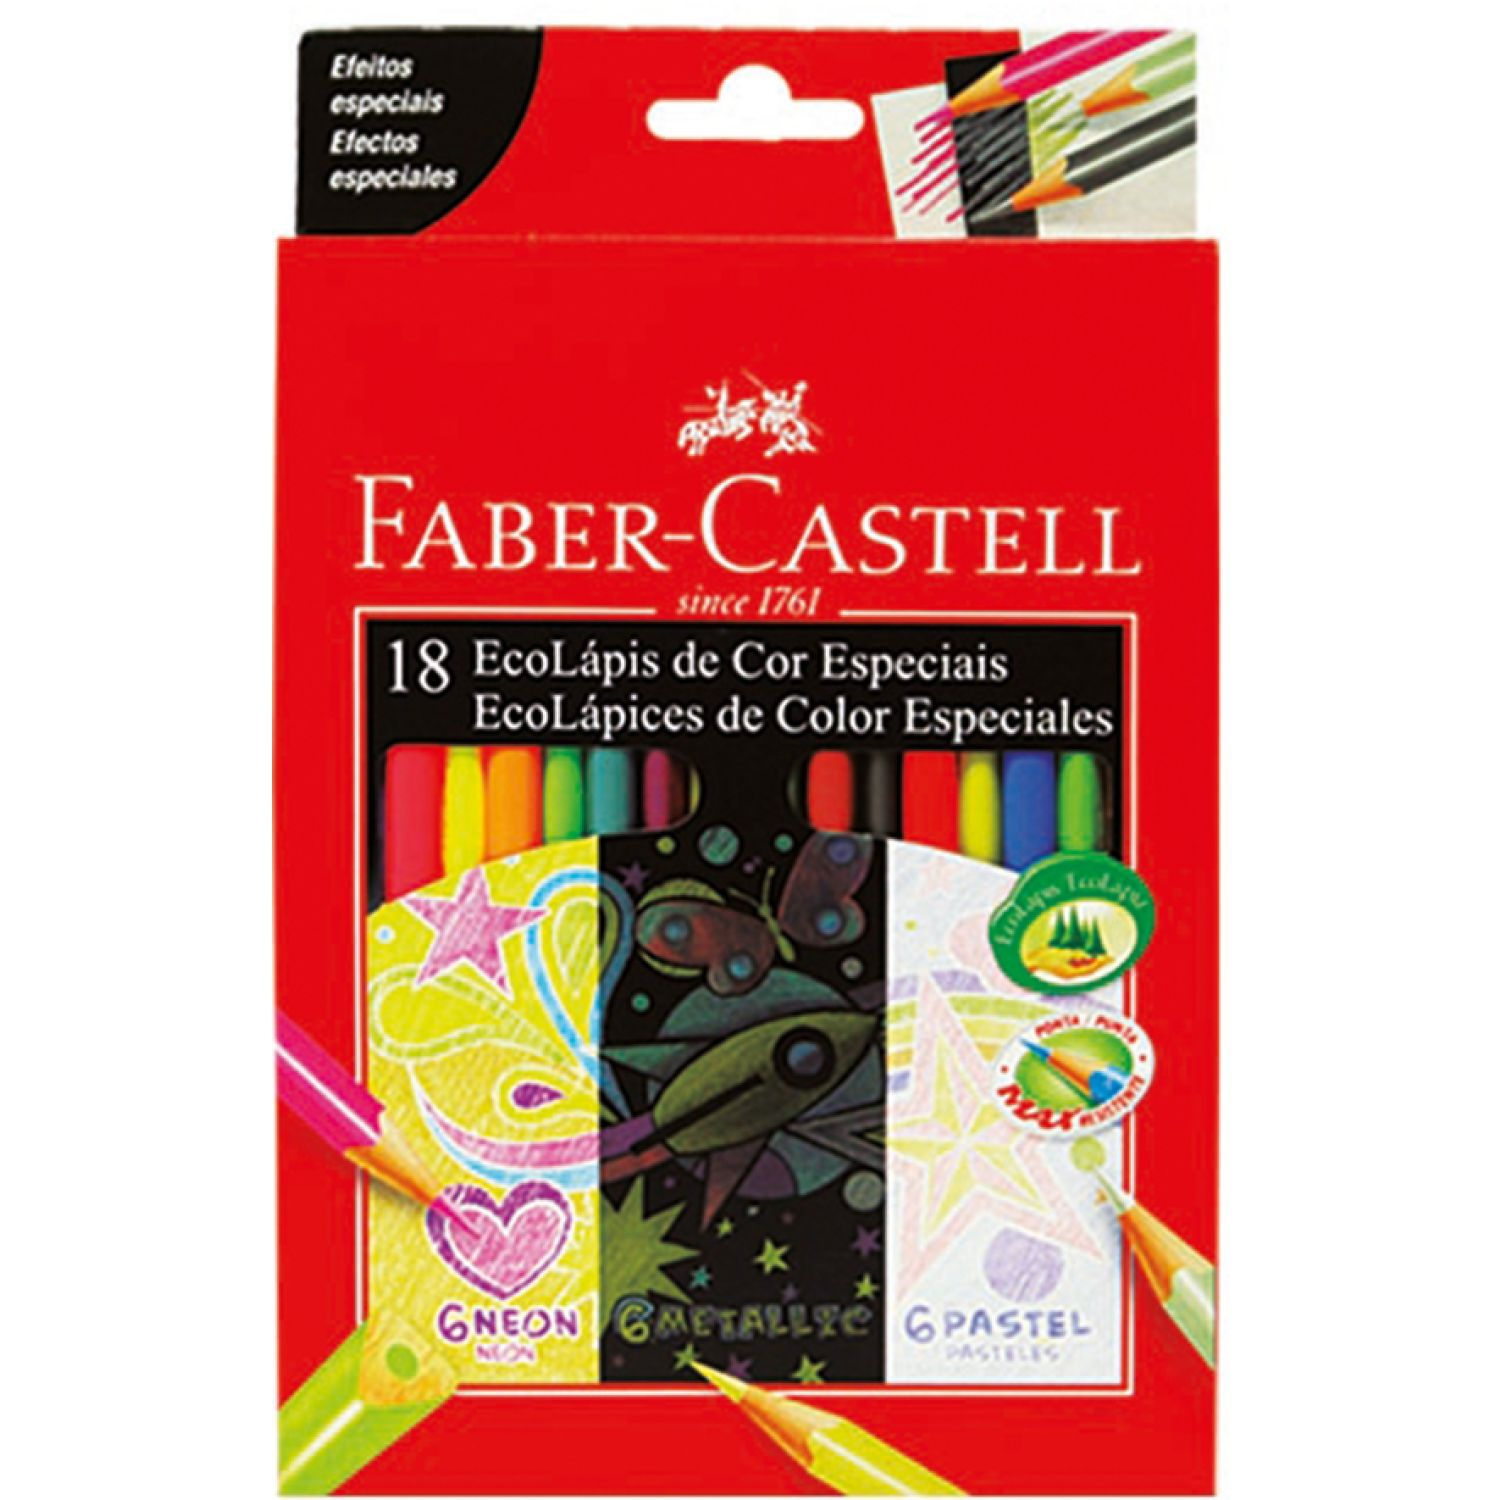 FABER CASTELL Ecolapices De Colores Past Neo Metx18 Varios Lápices coloreados